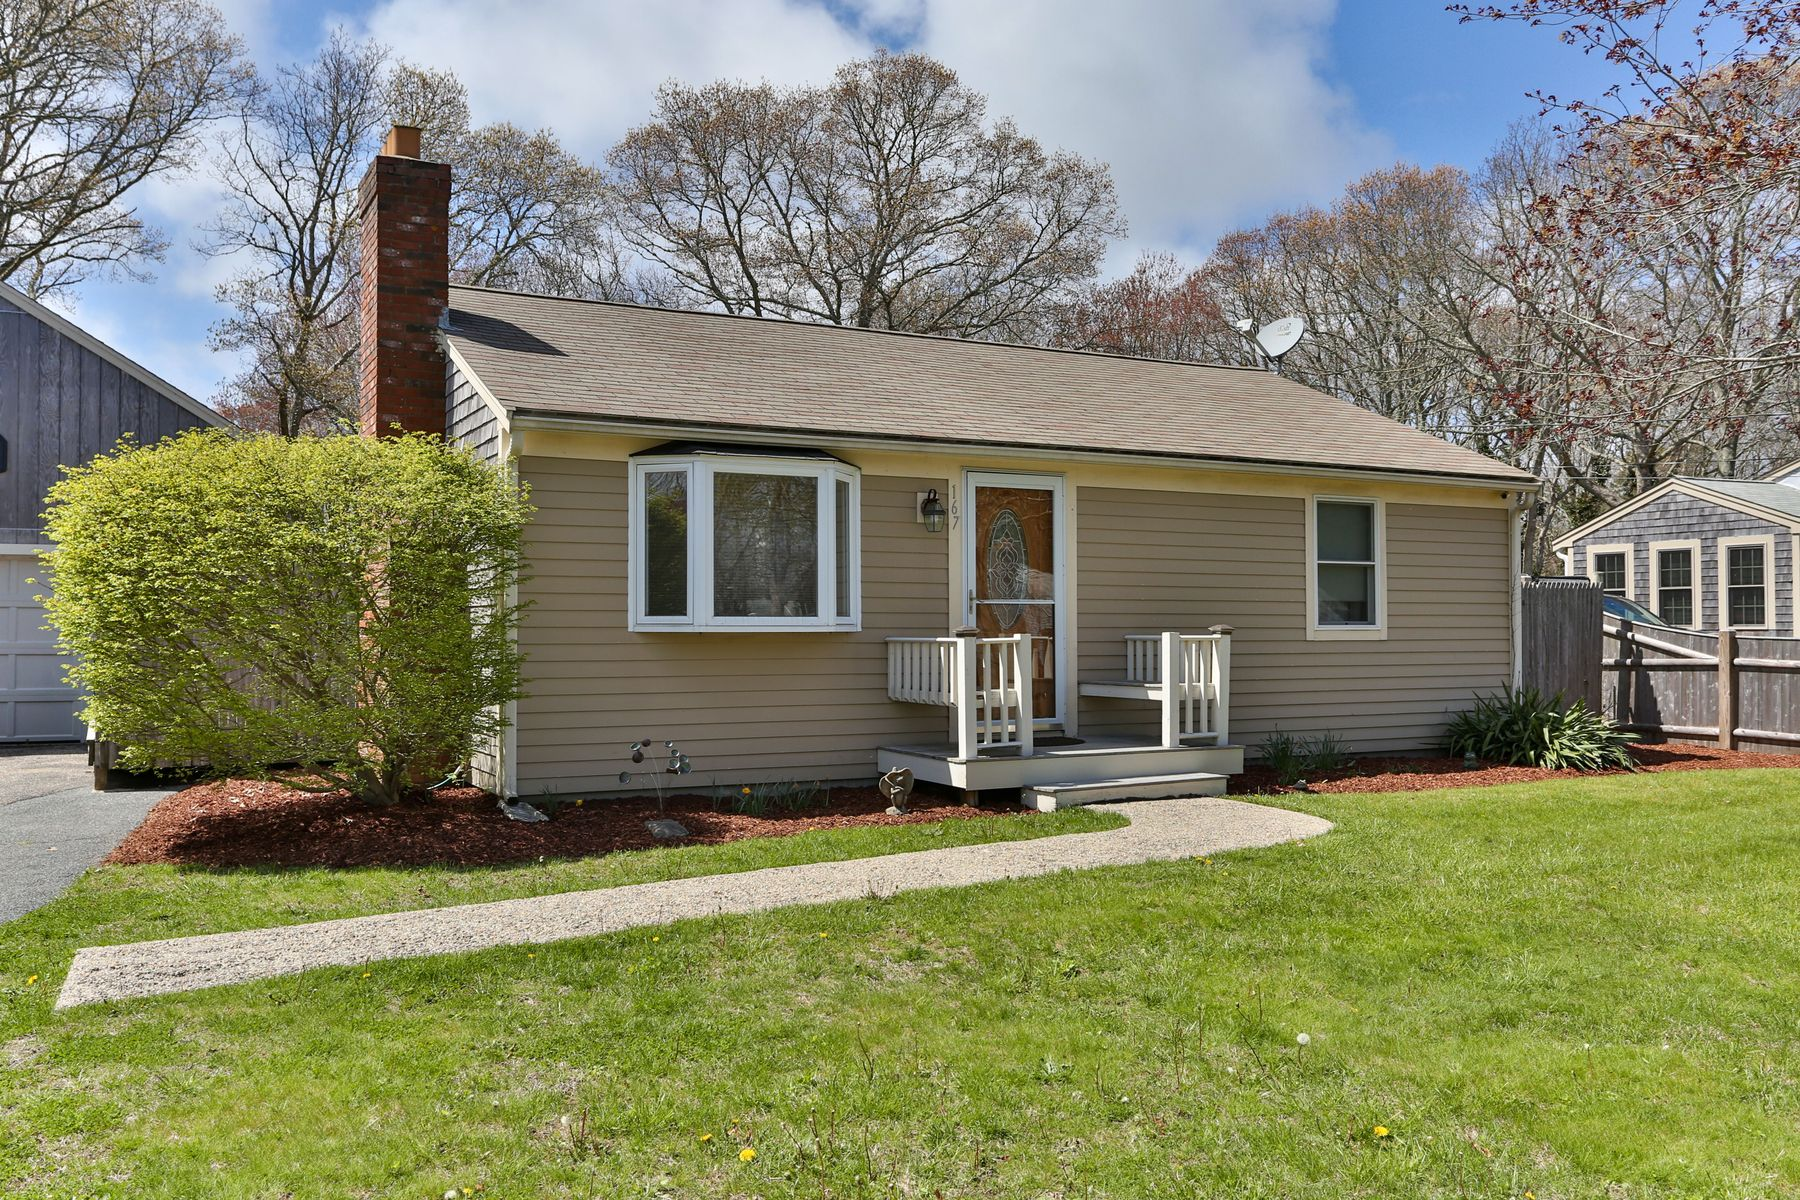 Single Family Home for Active at 167 Buckwood Drive, Hyannis 167 Buckwood Drive Hyannis, Massachusetts 02601 United States